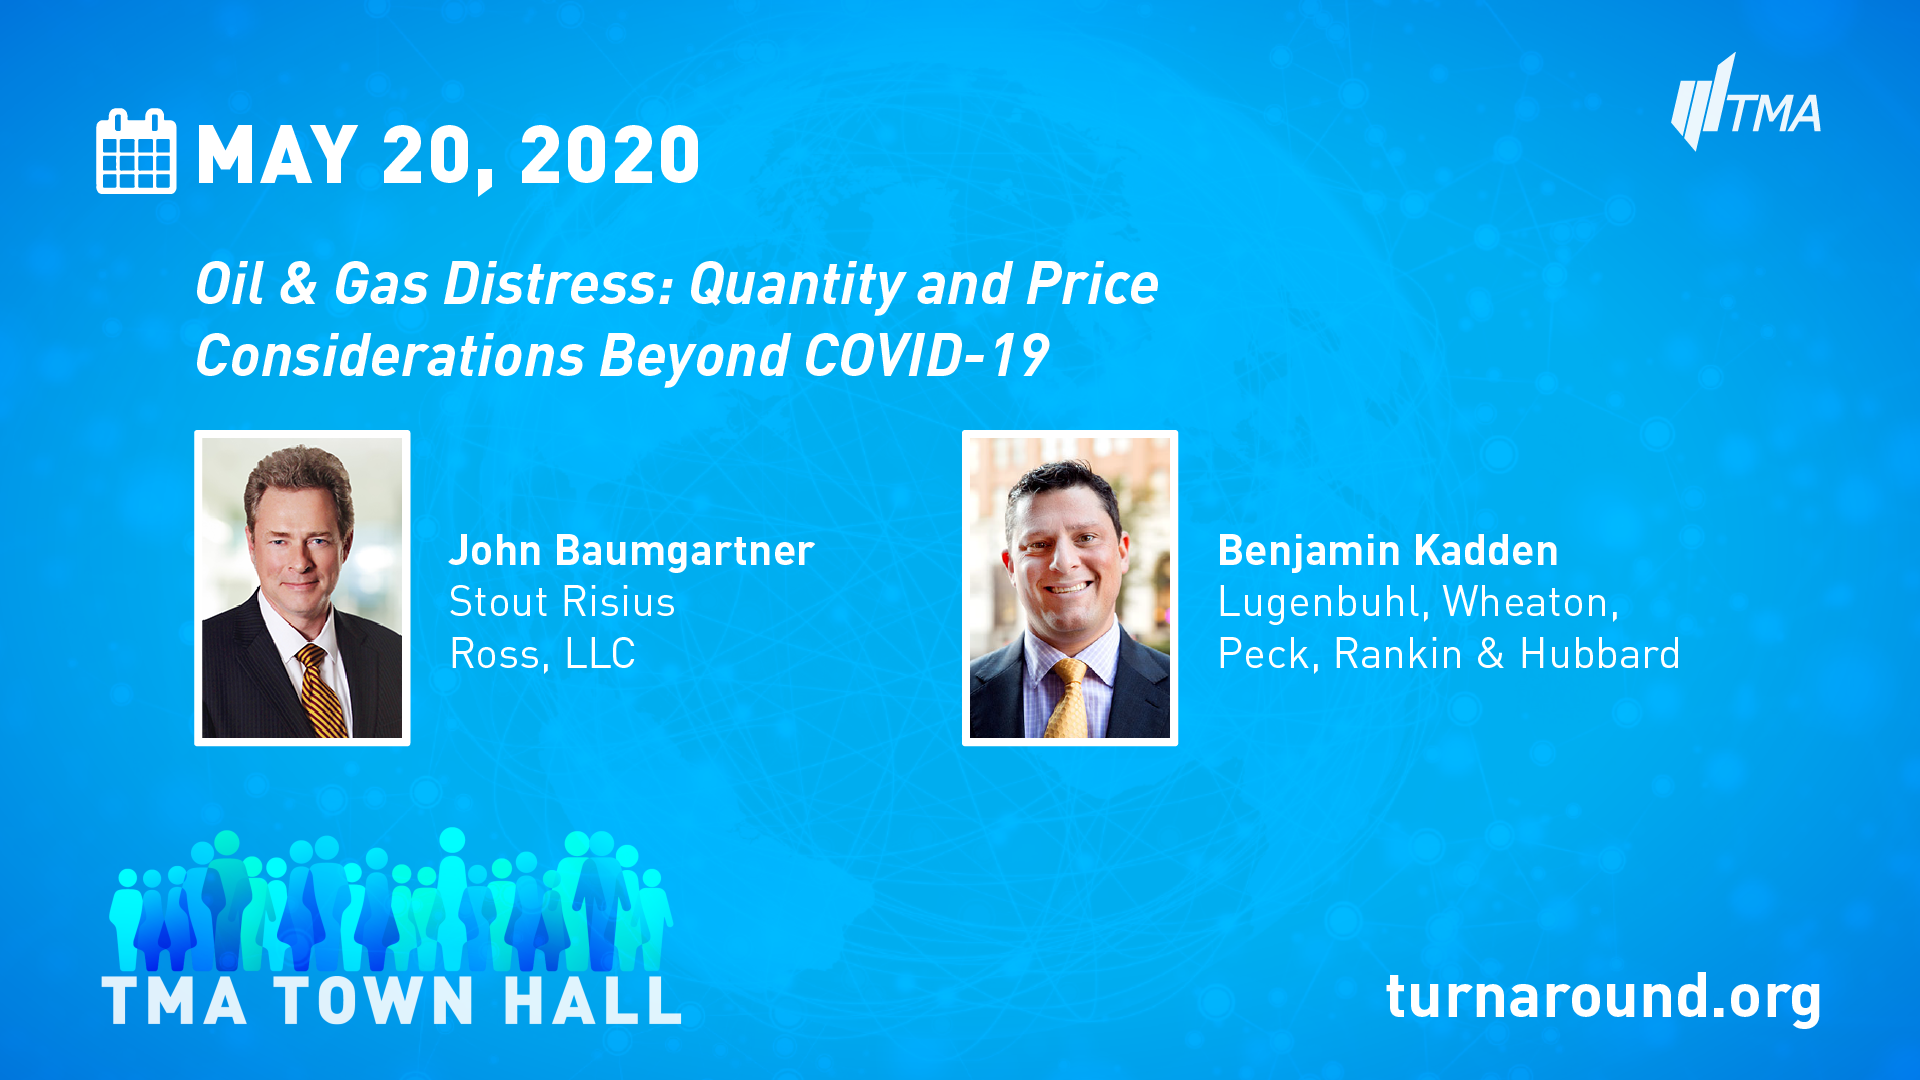 TMA Town Hall for May 20, 2020